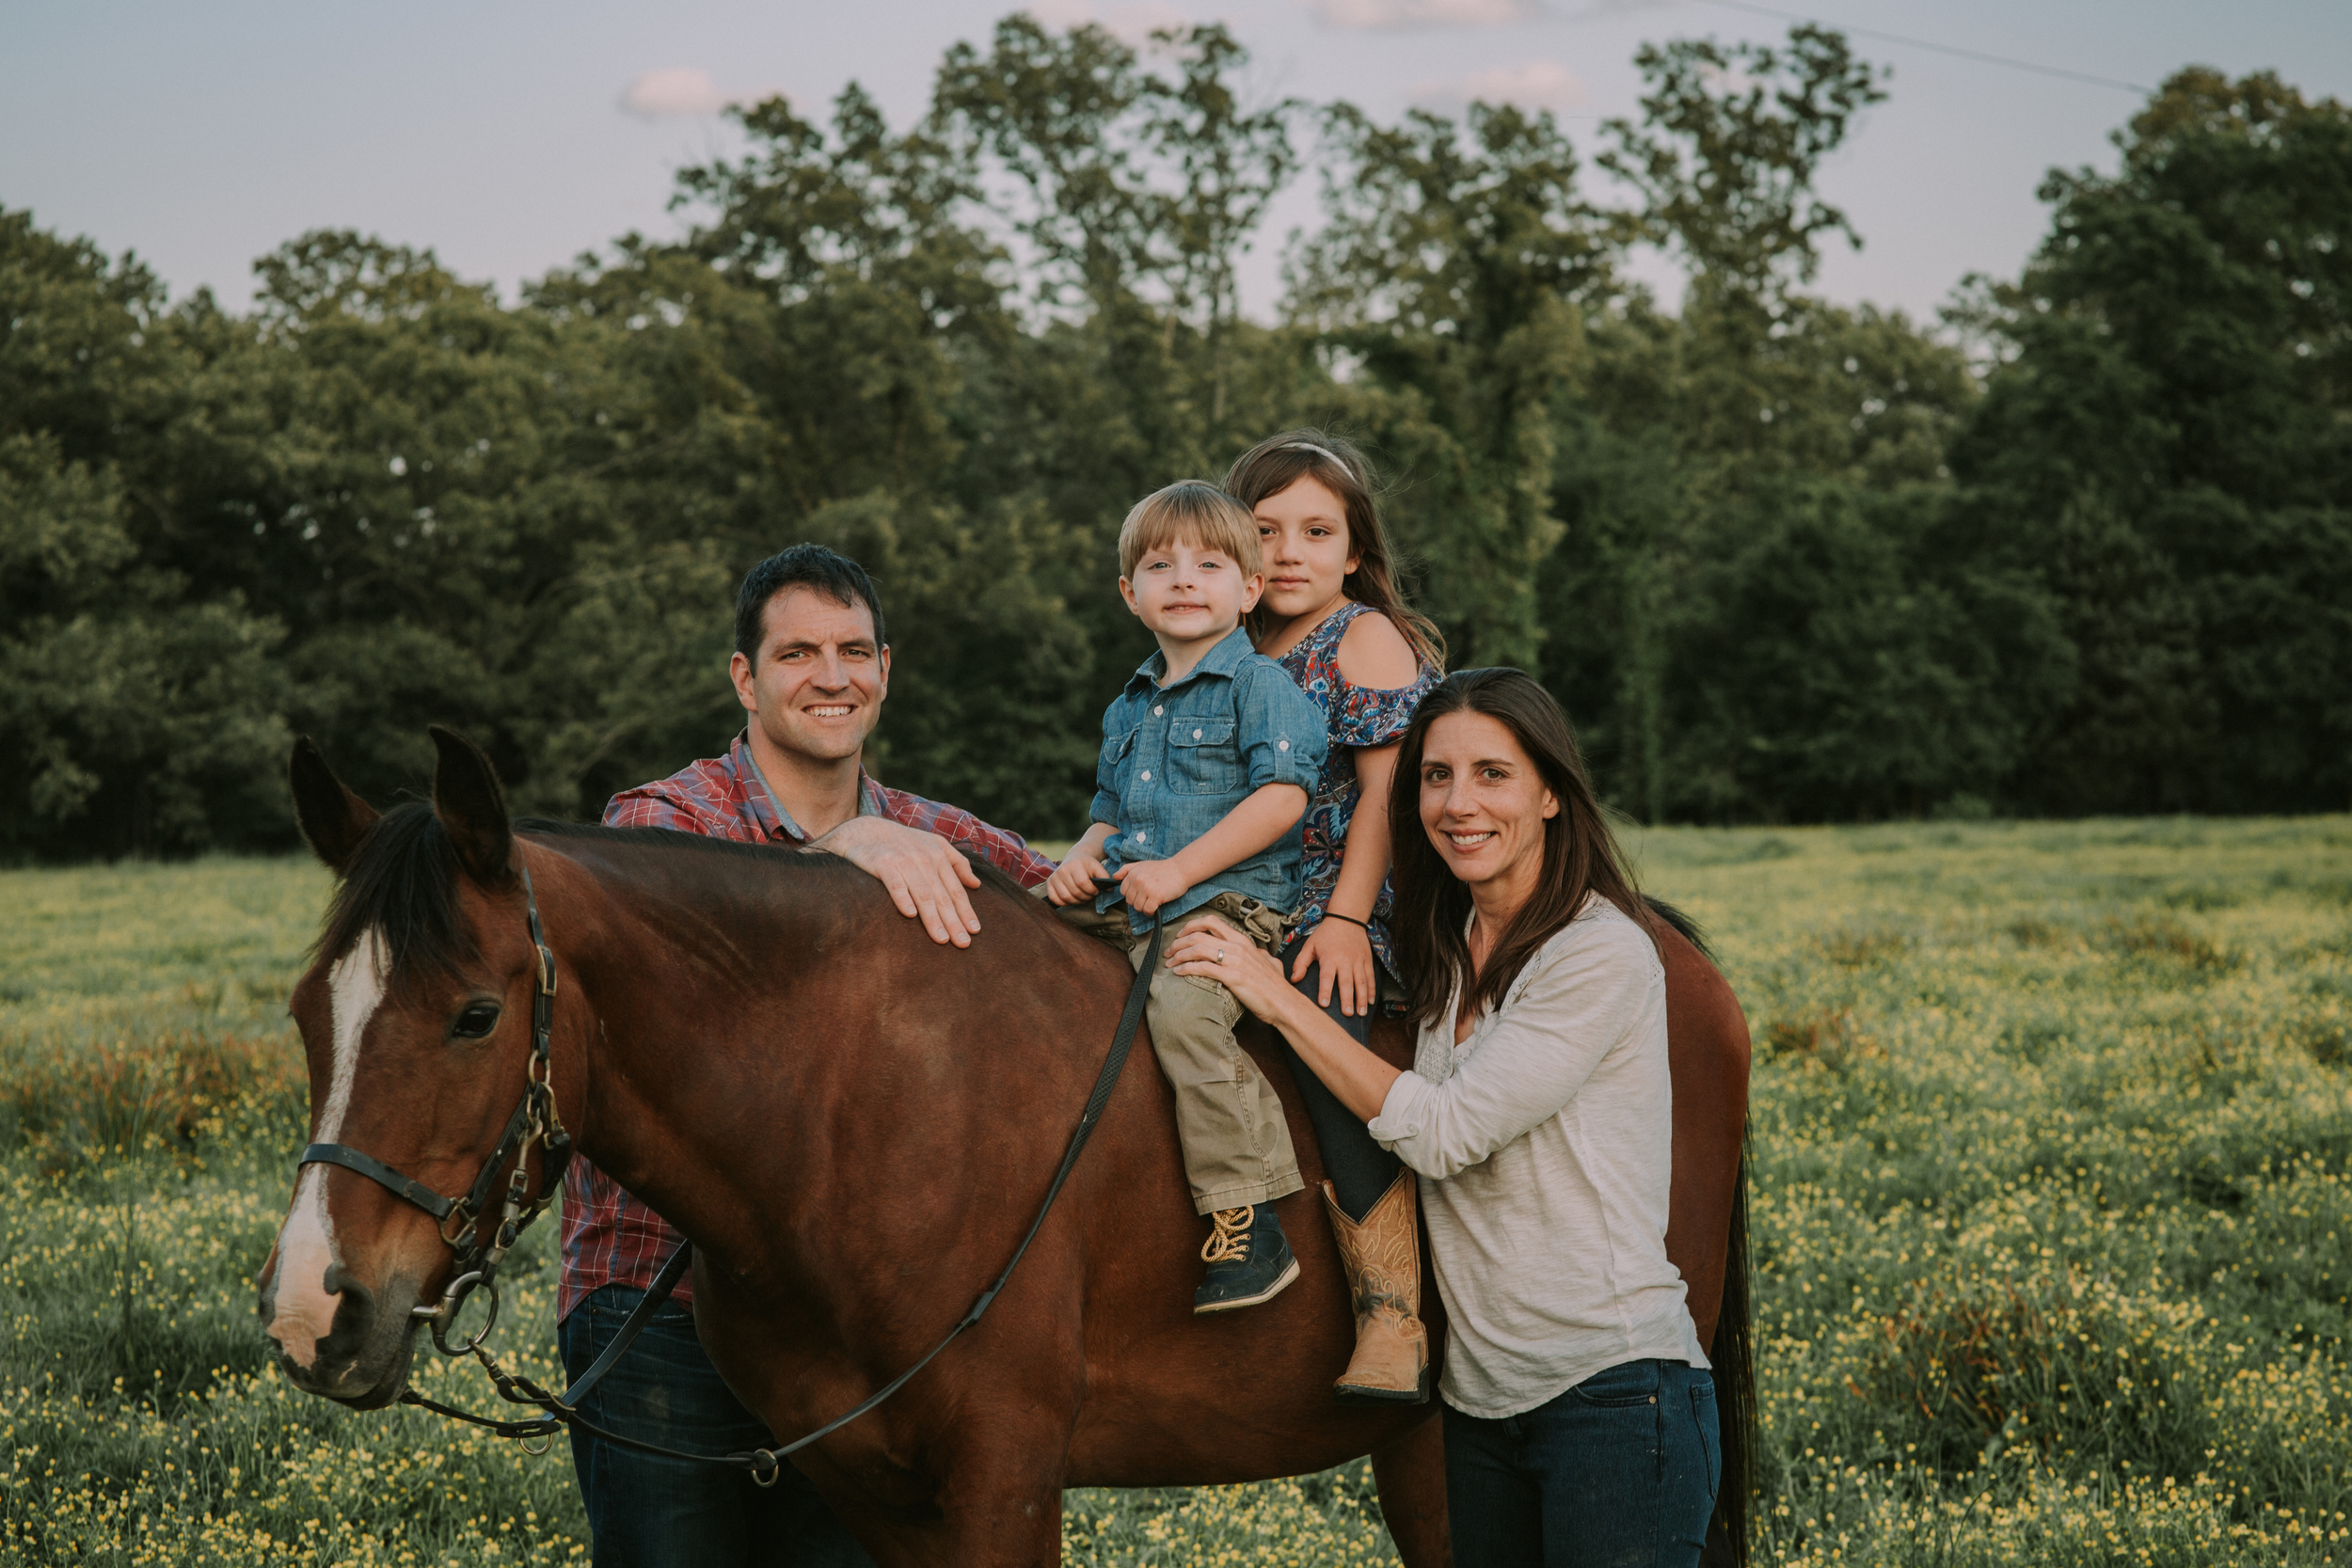 Ayotte Family - Lifestyle - Memphis, TN - K. Stoddard Photography 098.jpg